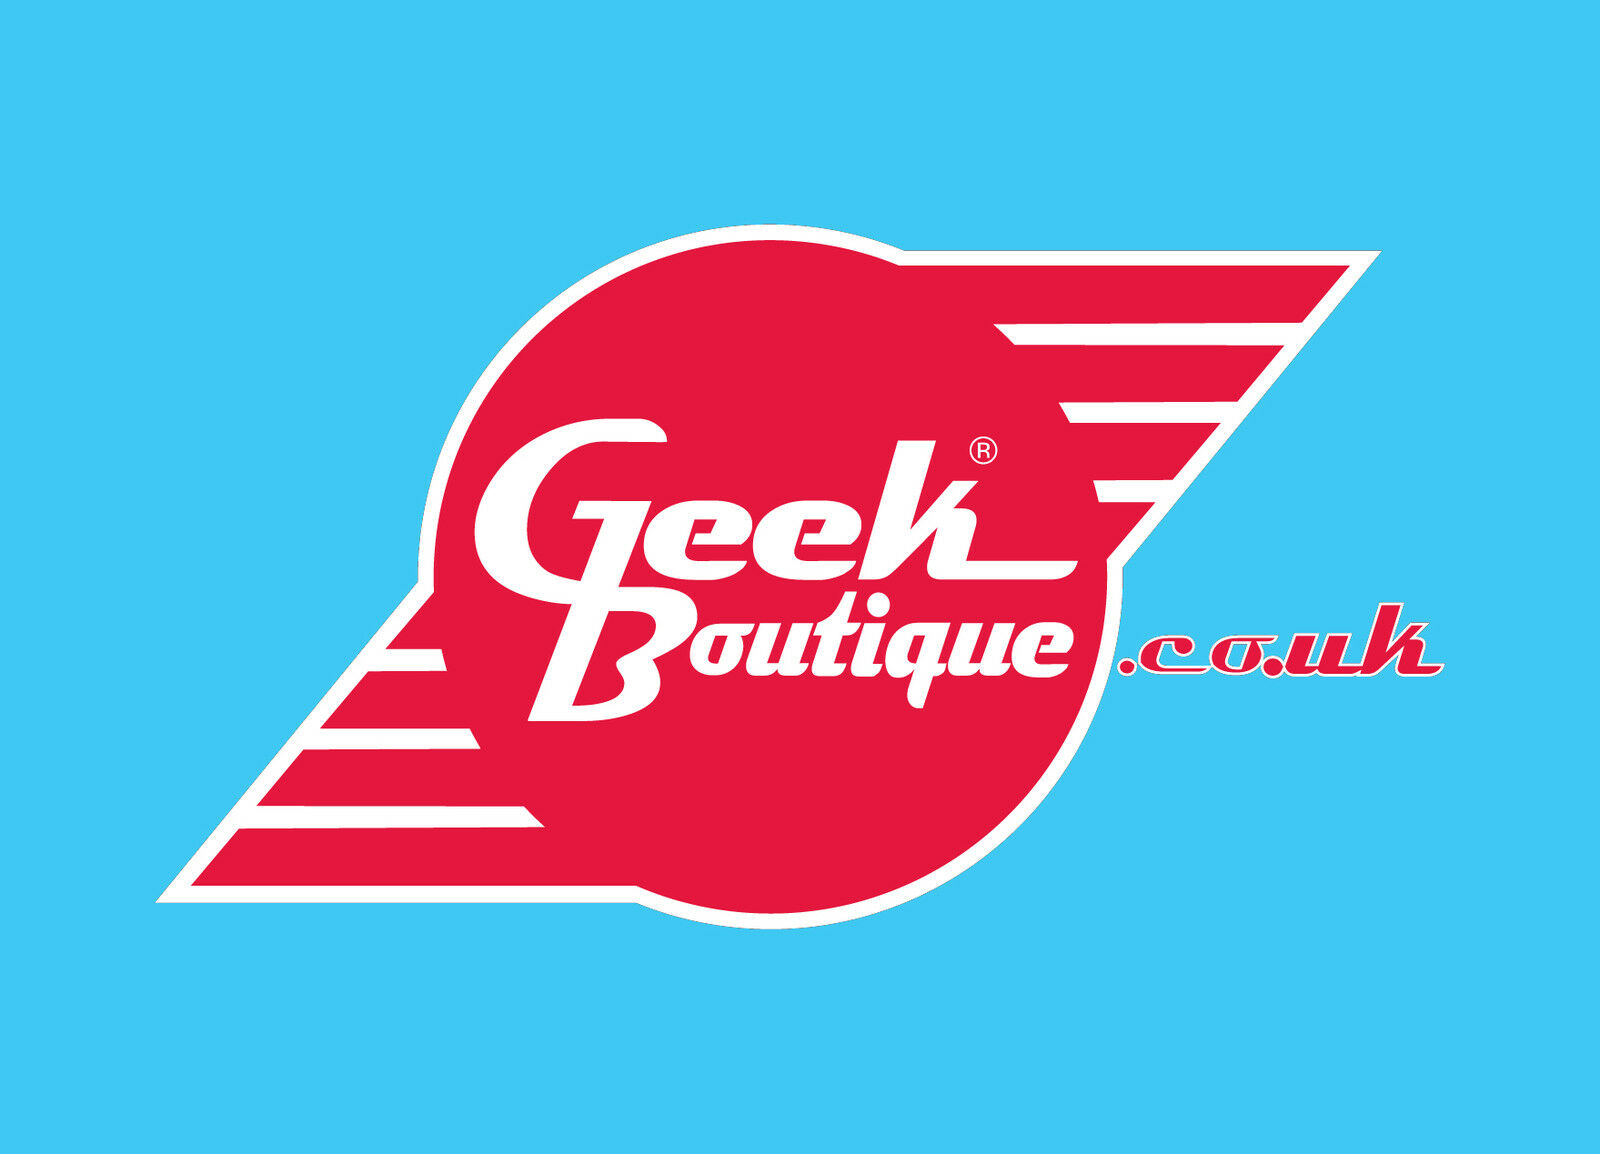 Geek Boutique Uk